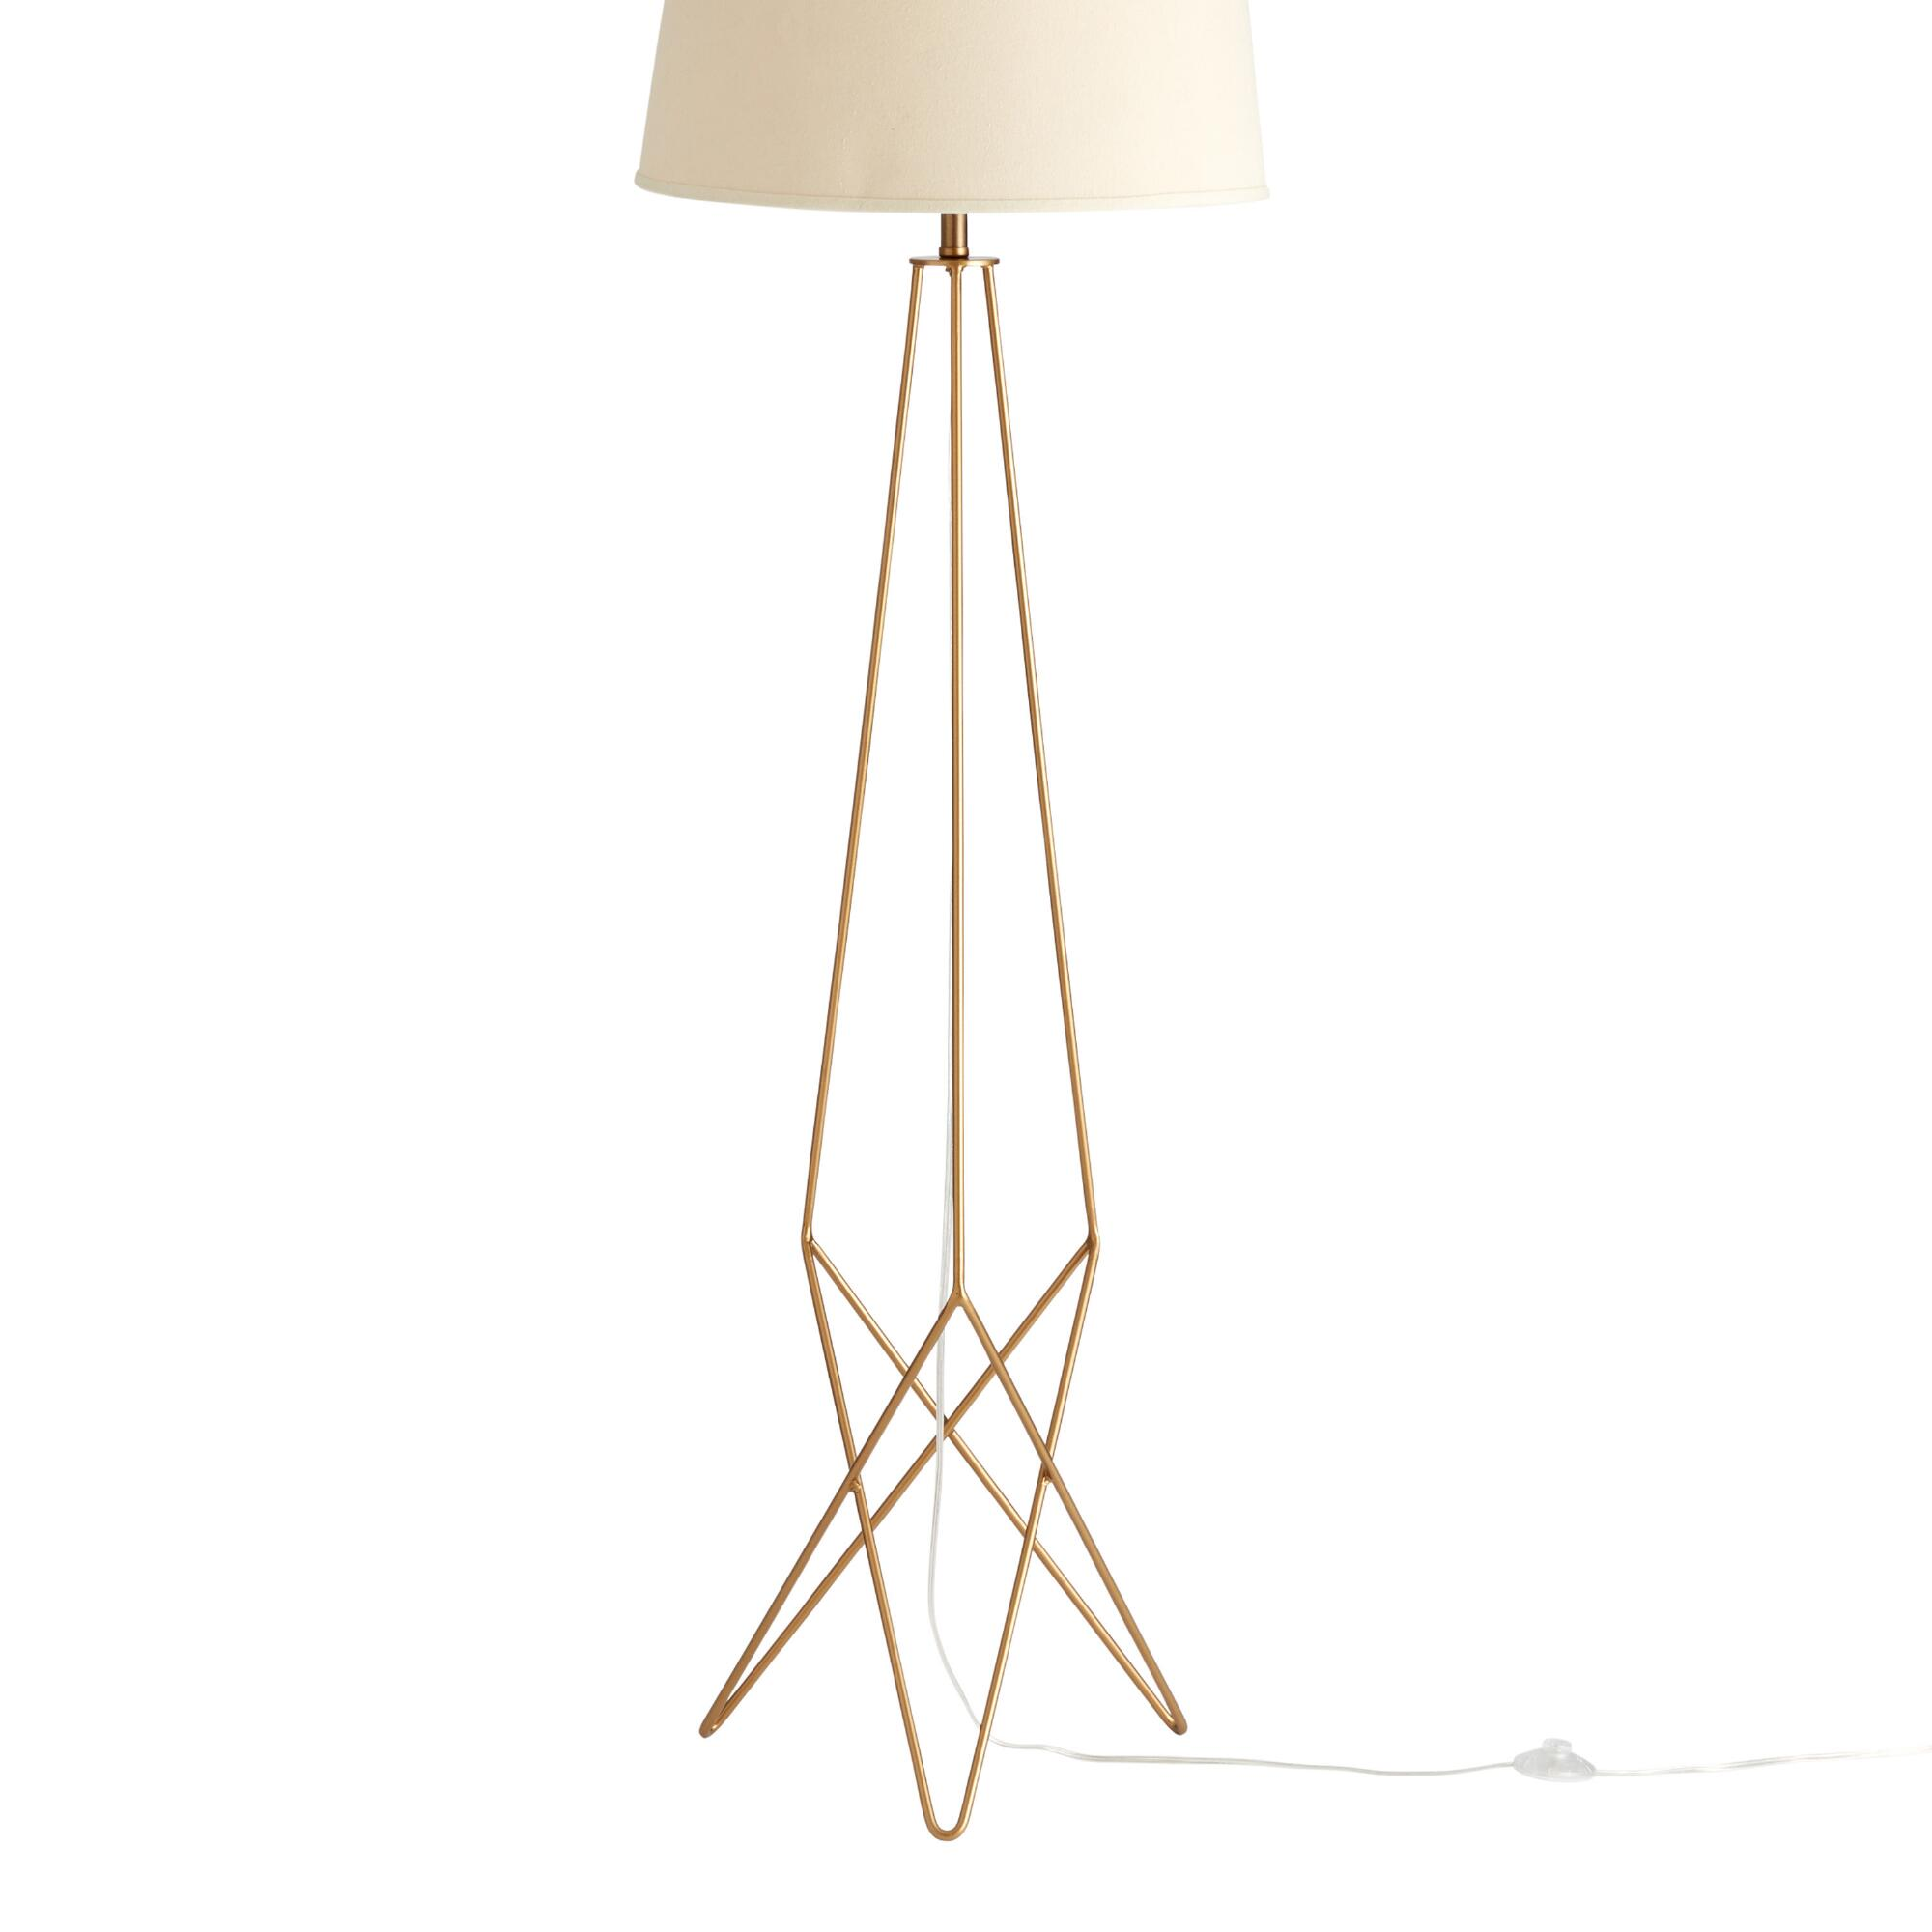 Floor lamps and tall task lamps world market antique gold hairpin floor lamp base geotapseo Image collections